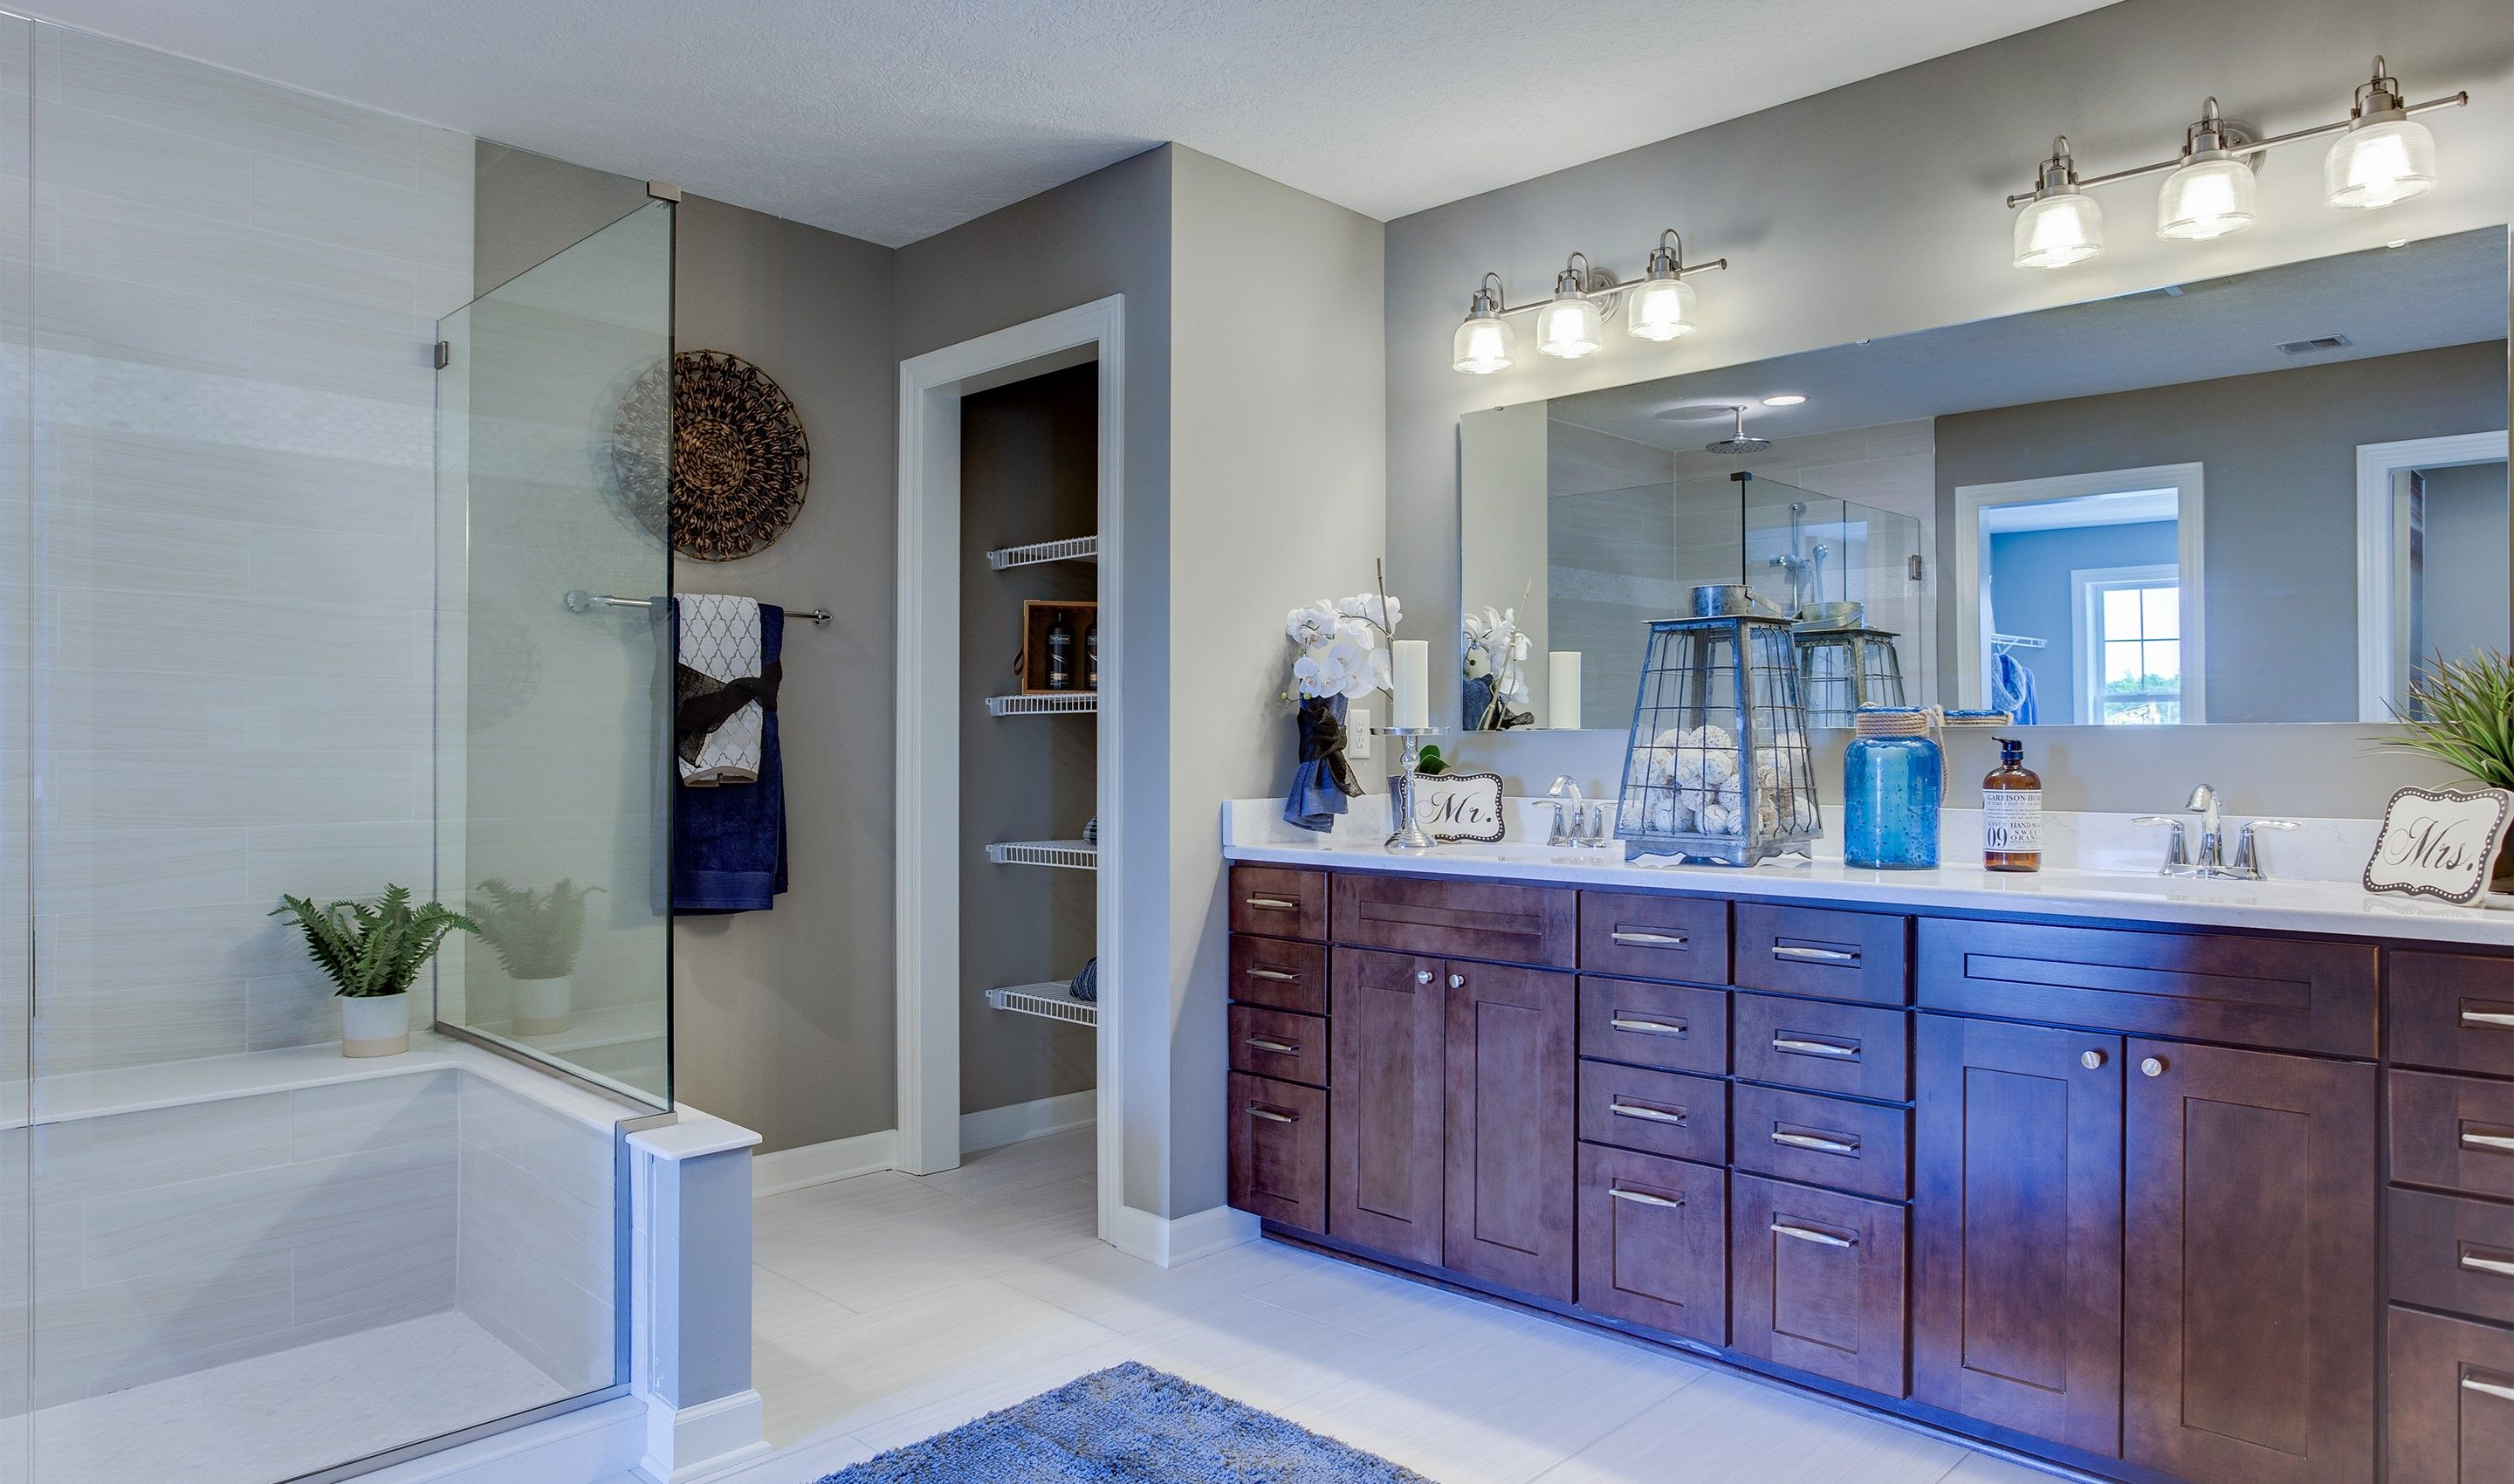 Bathroom featured in the Pendleton II By K. Hovnanian® Homes - Build on Your Lot in Mansfield, OH